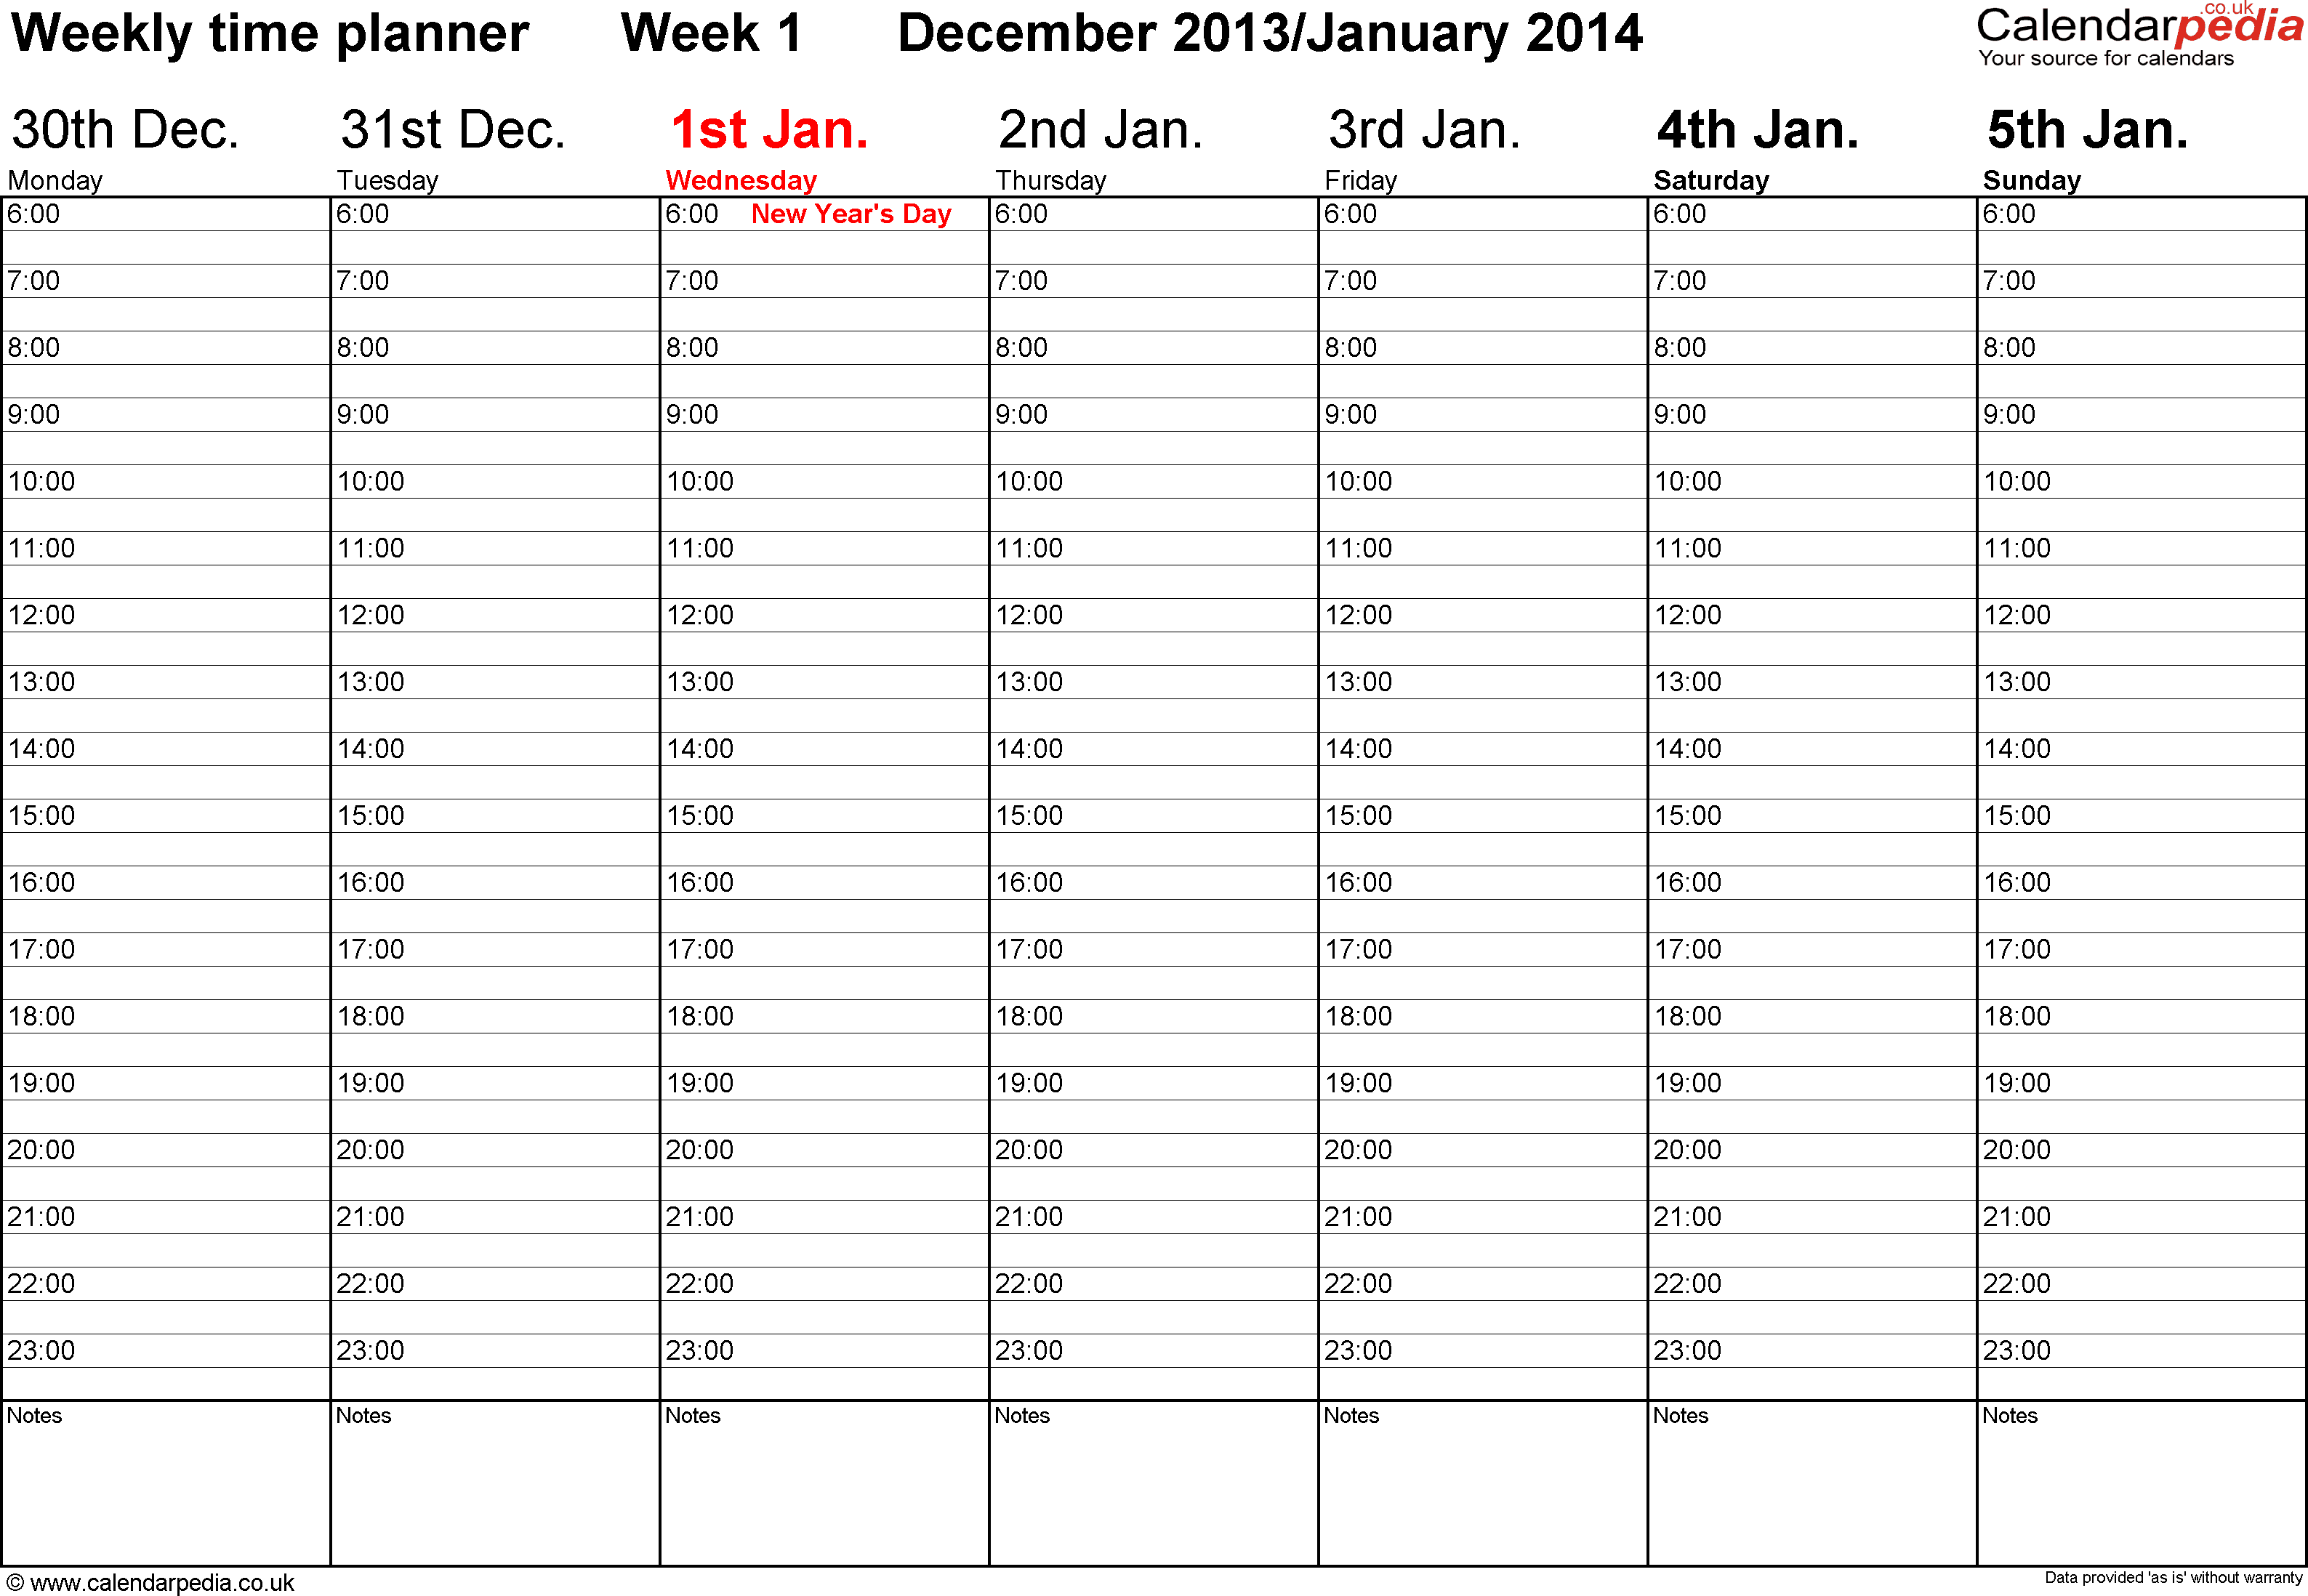 Excel template 1: Weekly calendar 2014, landscape orientation, 53 pages (1 calendar week on 1 page), time management layout (showing 18 hours per day from 6am to midnight in 30 minute steps)